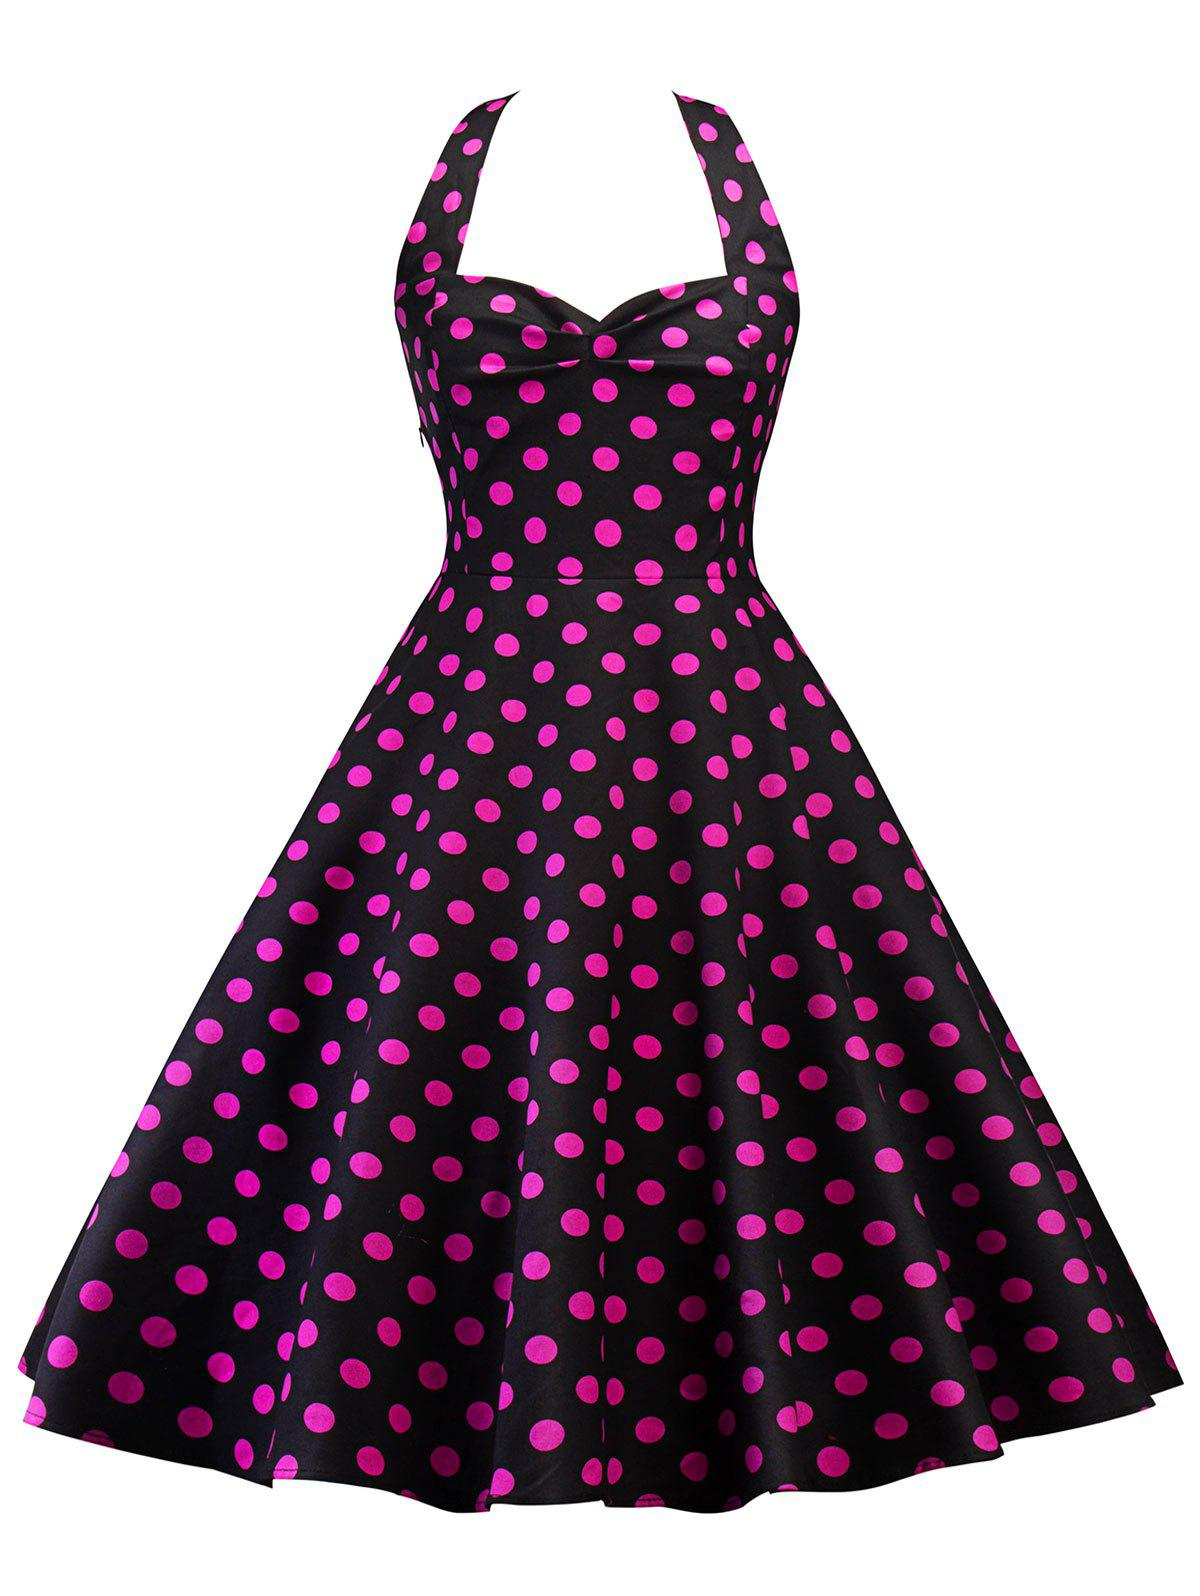 Vintage Halter Backless Polka Dot Pin Up Dress polka dot lace up halter a line dress